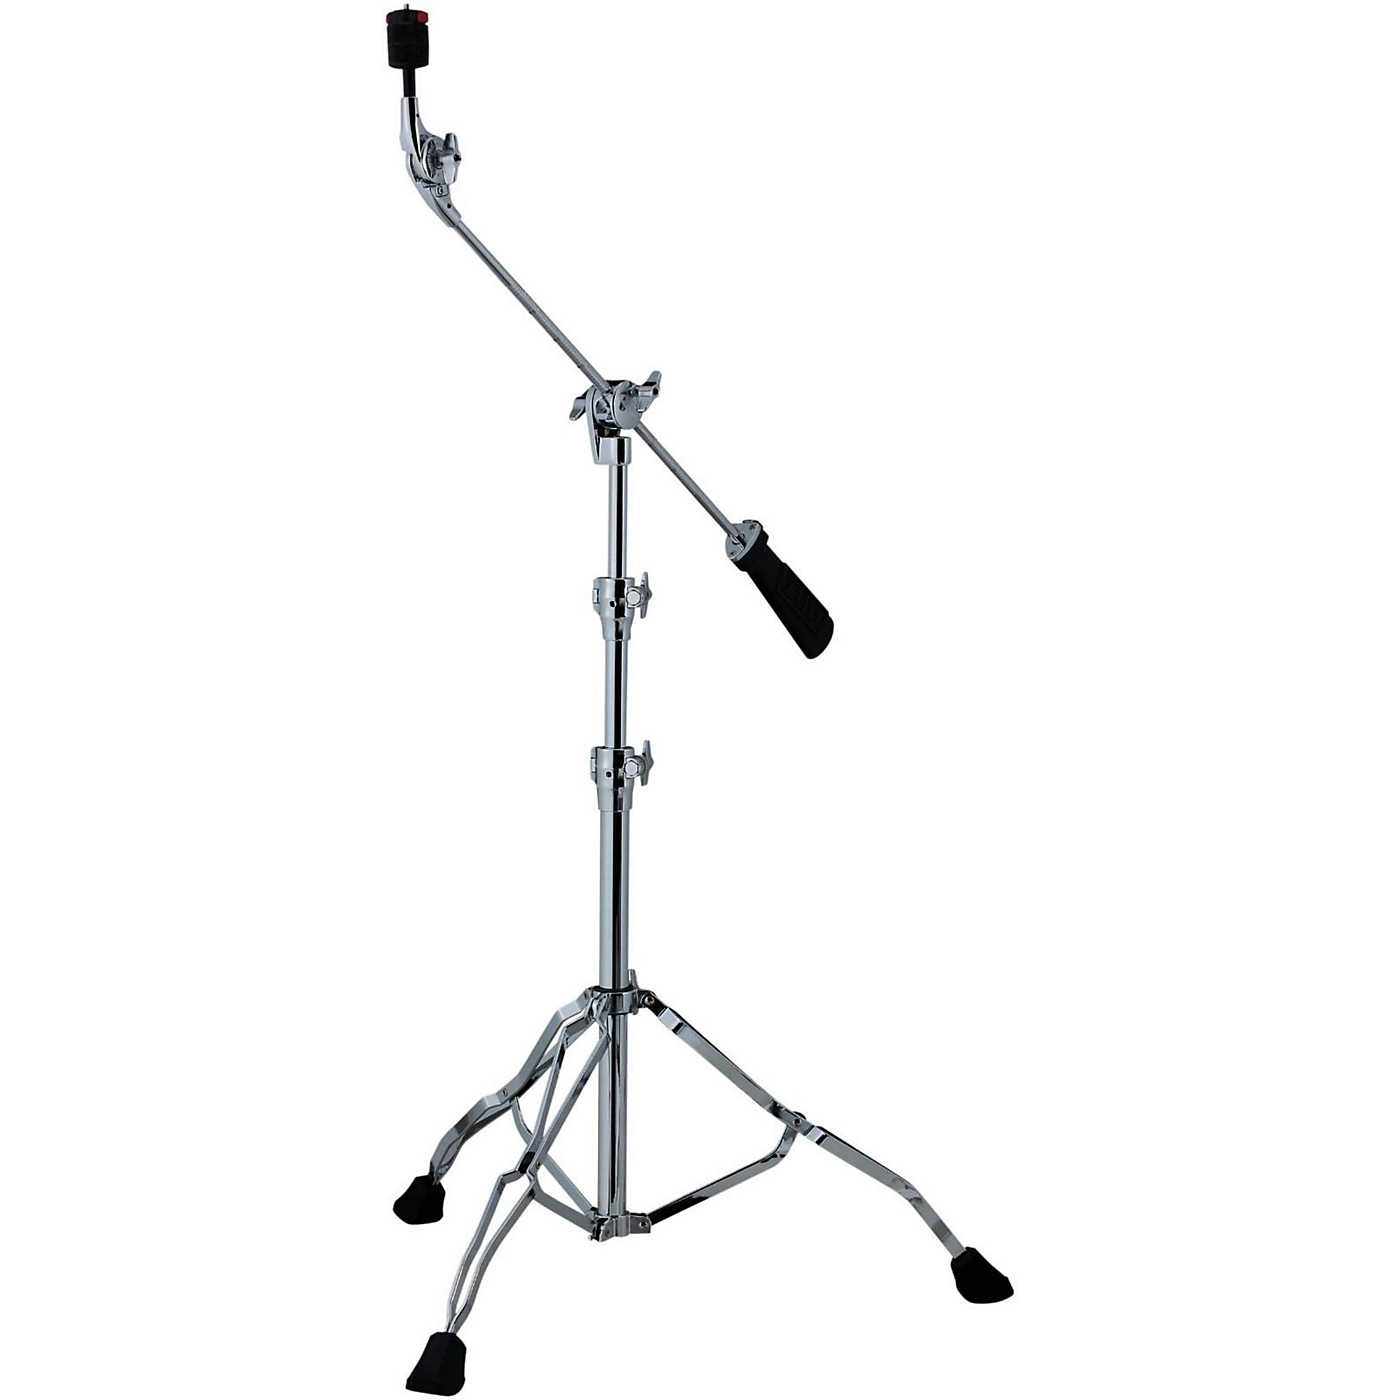 TAMA Roadpro Series Boom Cymbal Stand with Detachable Weight thumbnail